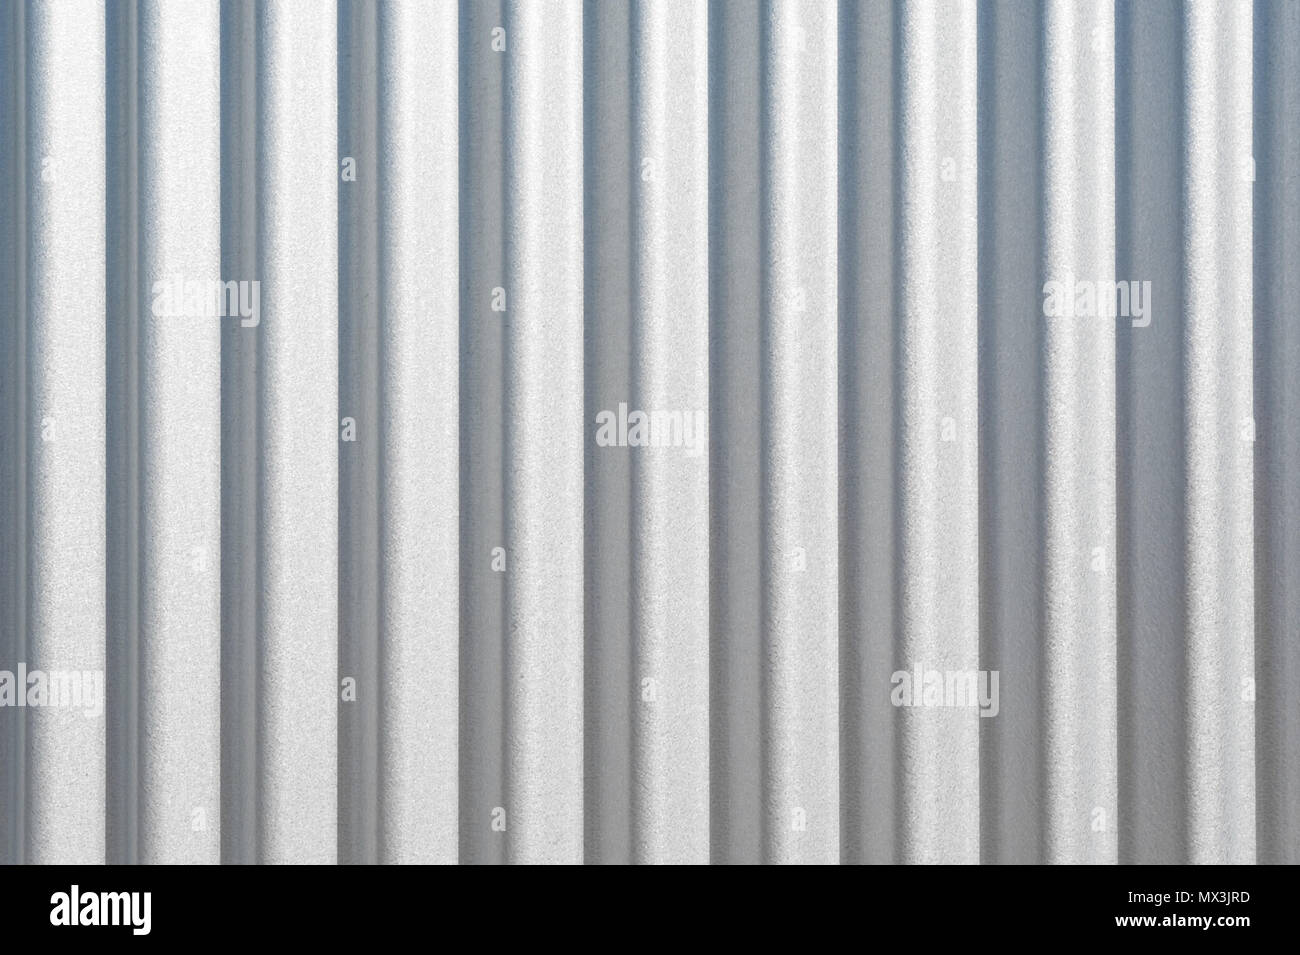 Background texture of clean wavy corrugated vertical metal